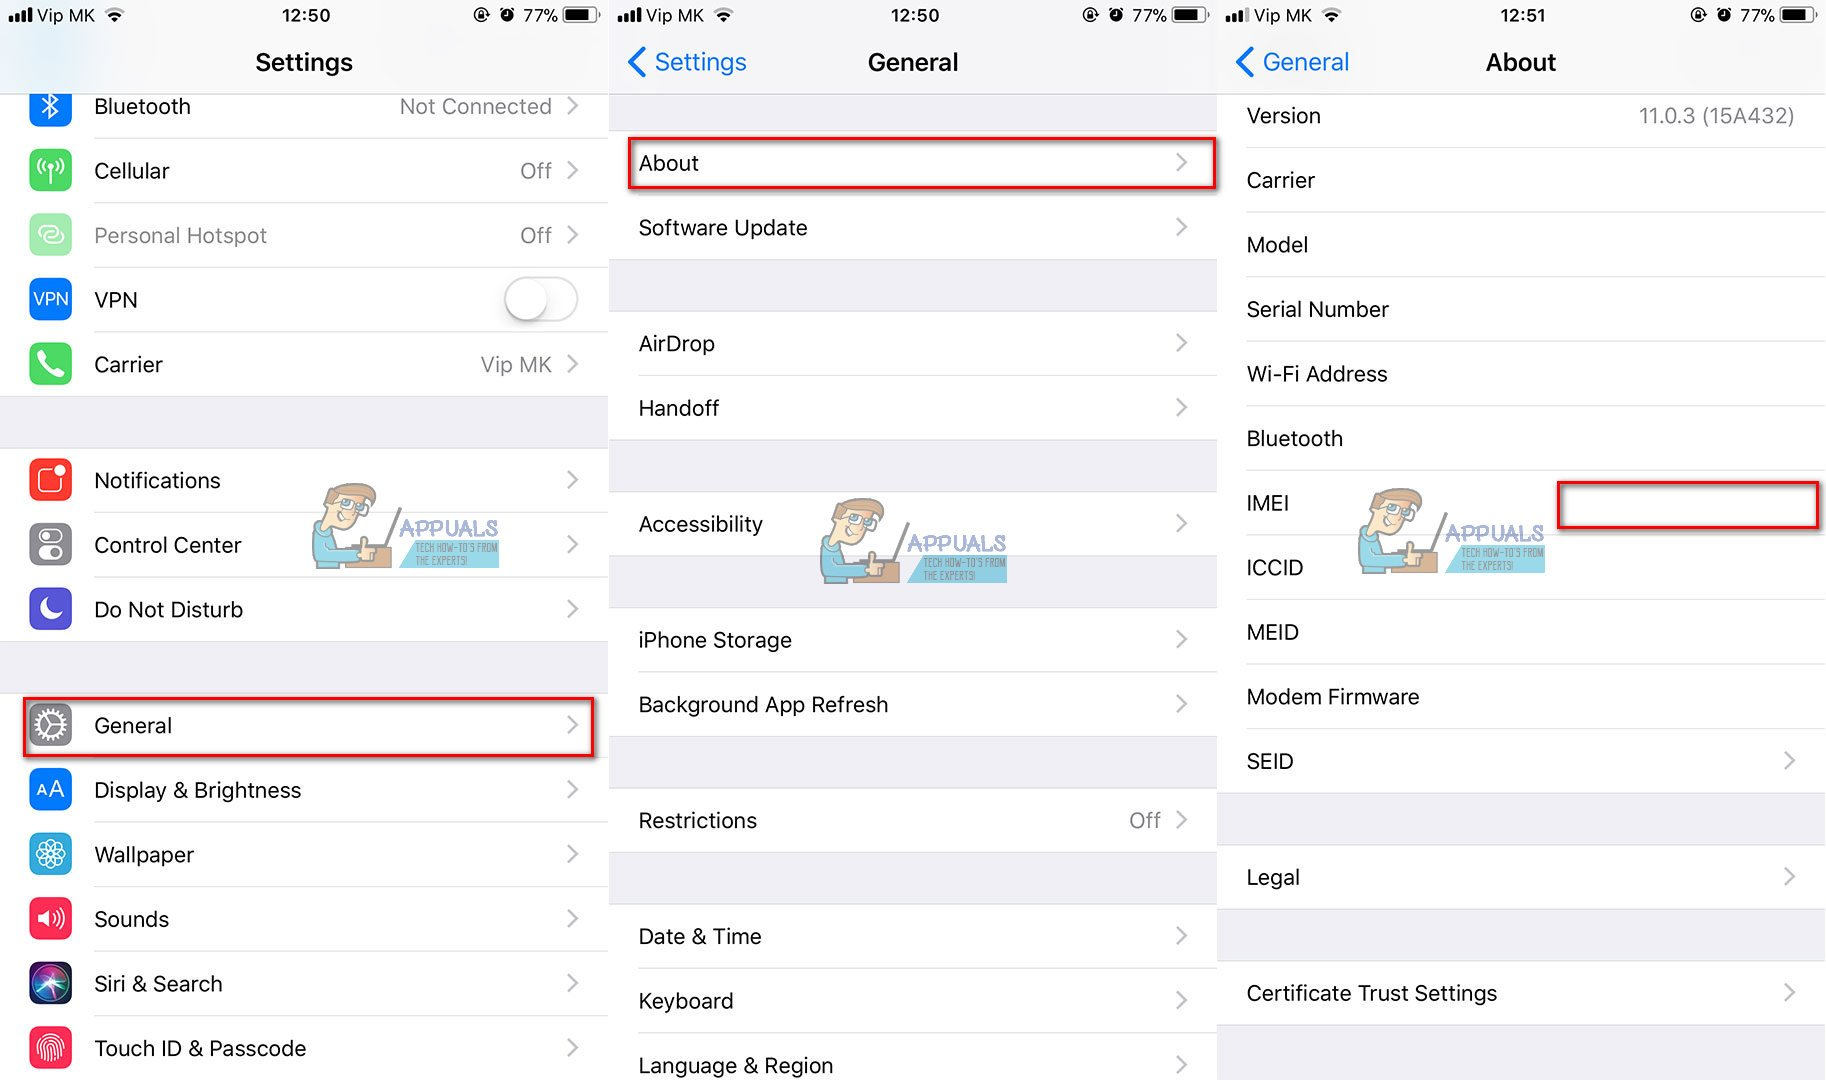 How to Check if Your iPhone is Locked by a Carrier